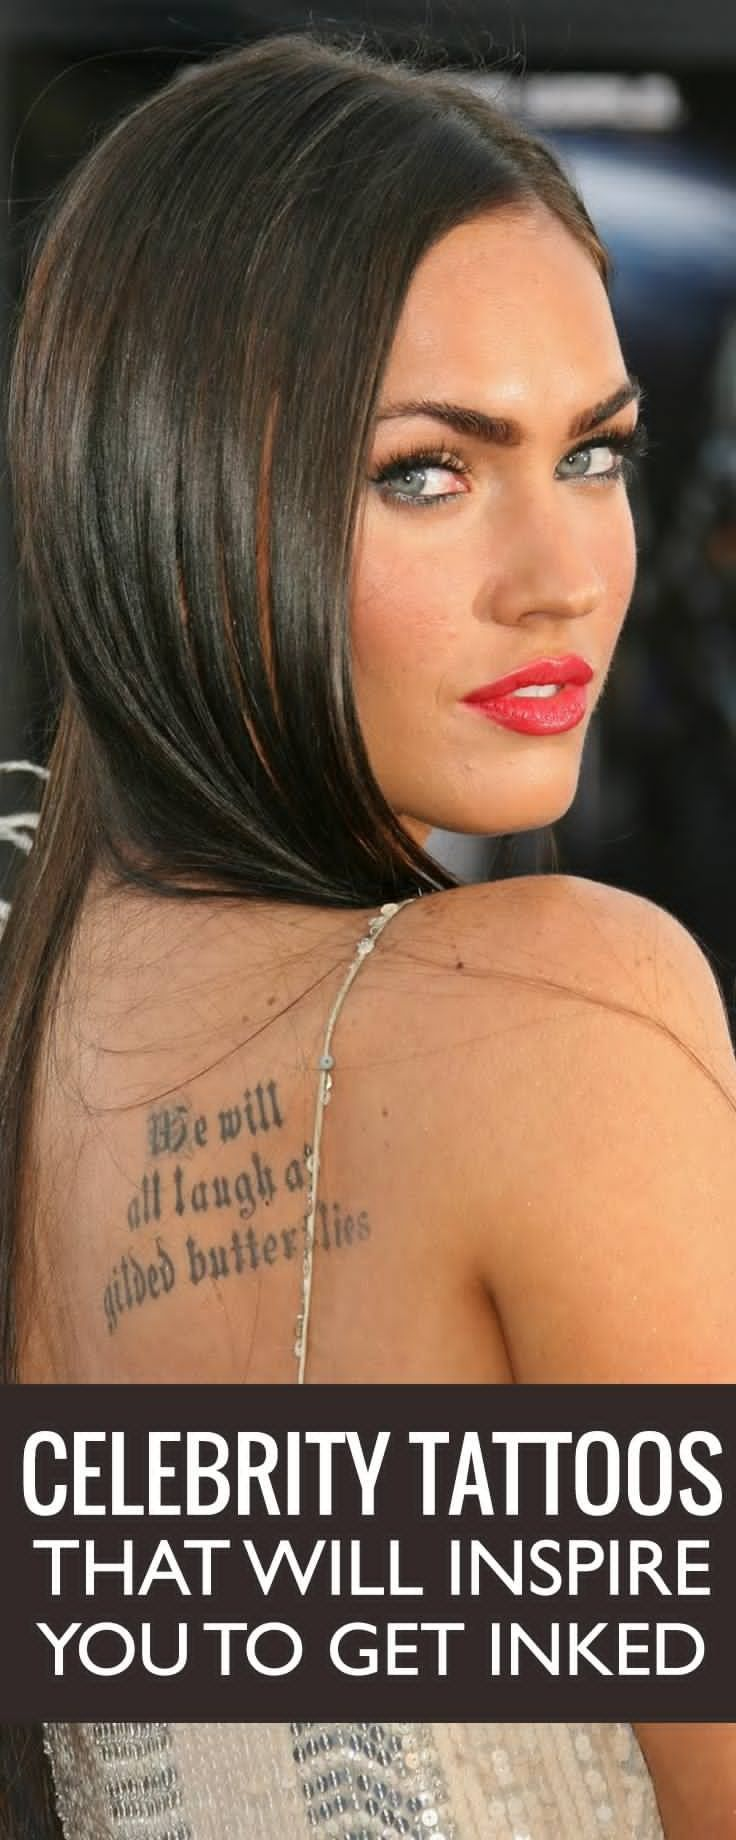 What could be the stories behind the tattoos of our Hollywood celebrities?